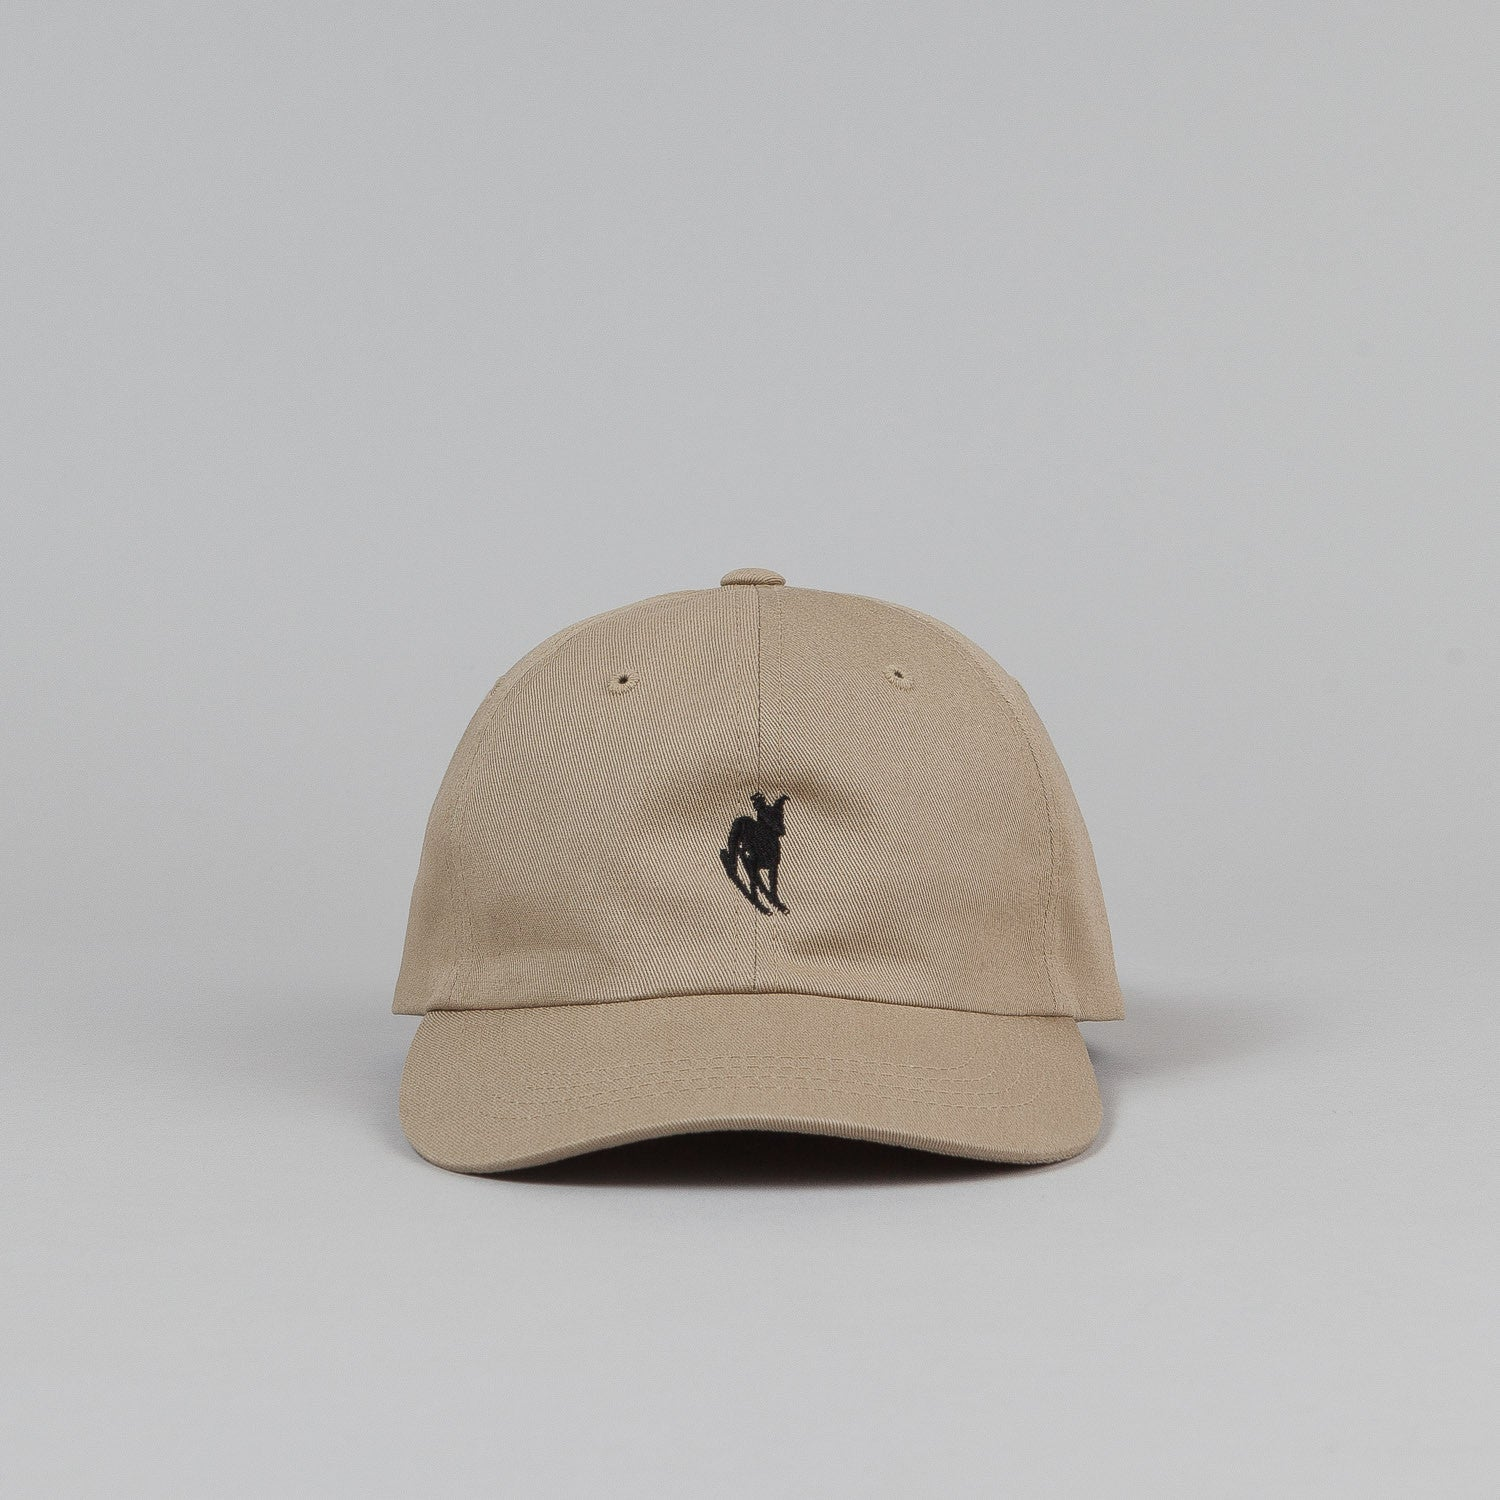 Welcome Rocking Dog Slider Cap - Khaki / Black